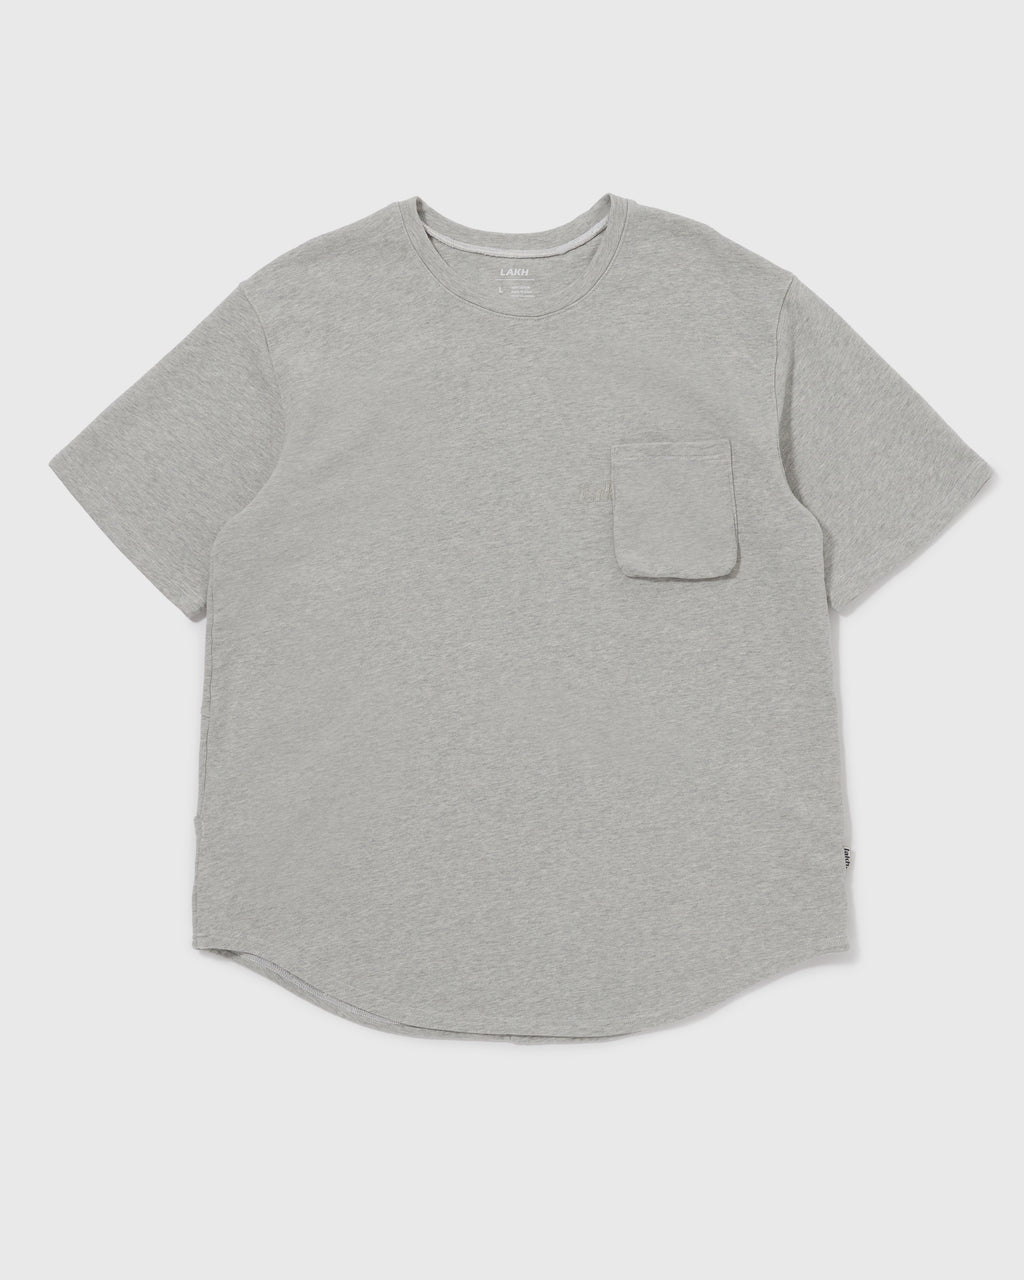 Knitted Utility Tee - Light Grey